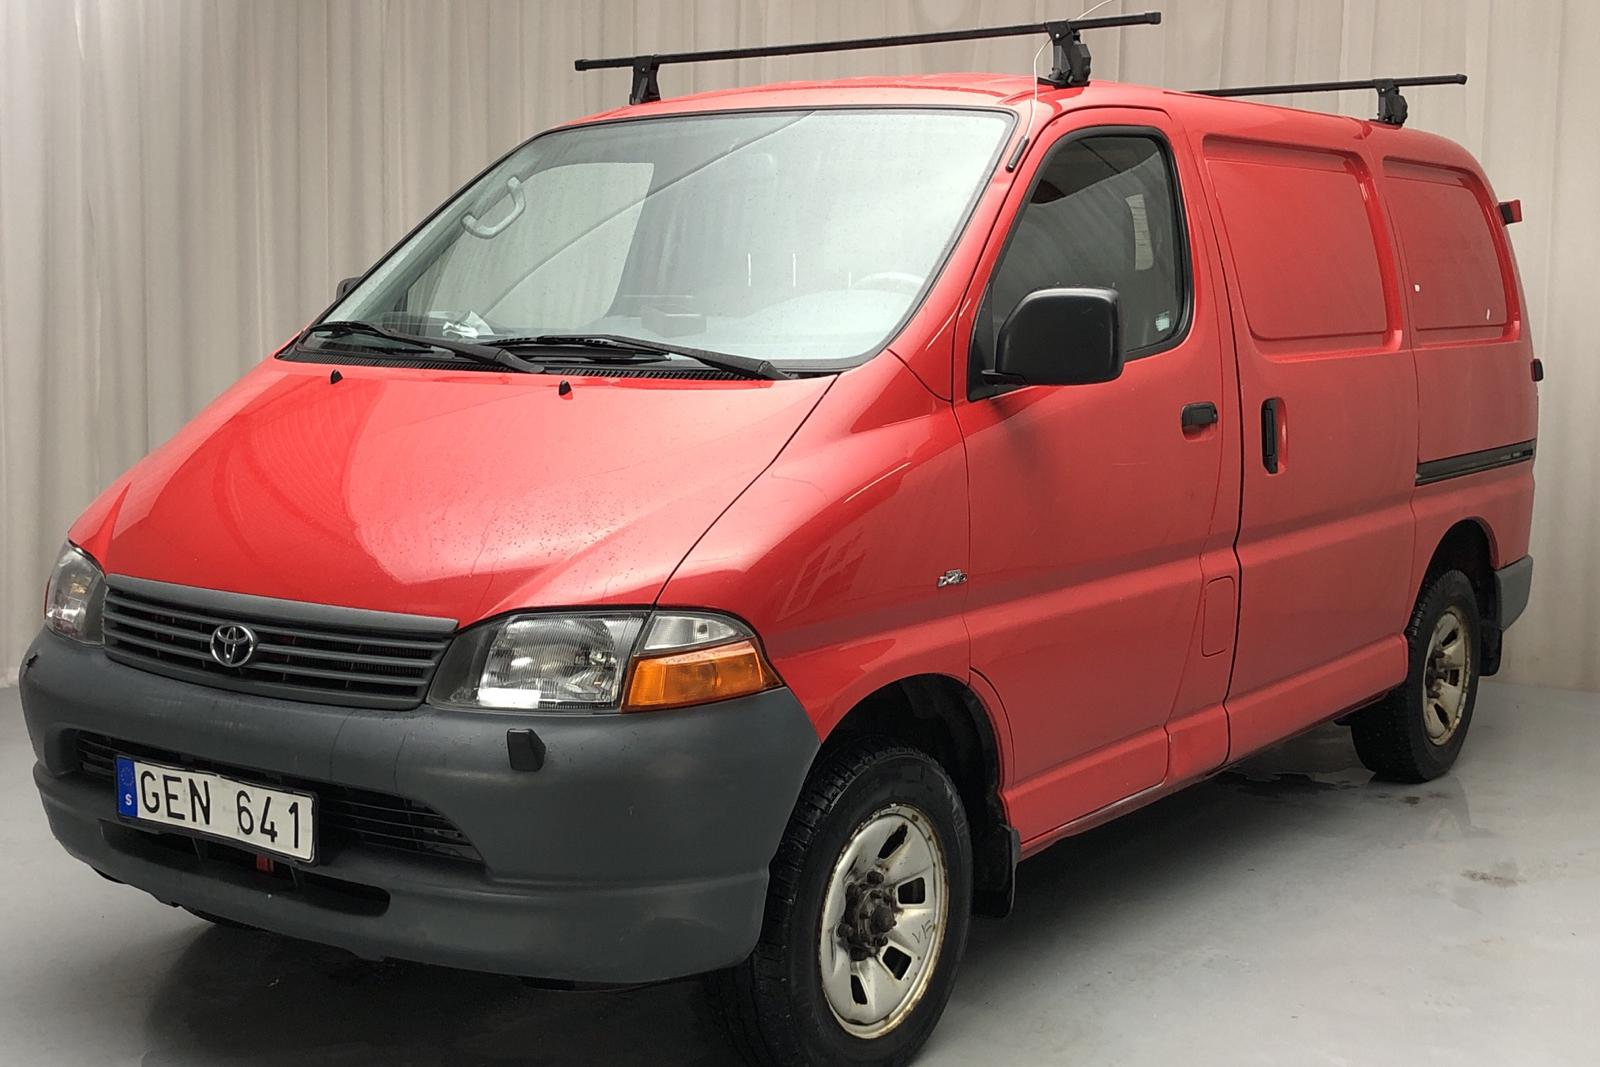 Toyota Hiace 2.5 D-4D 4WD (100hk) - 180 490 km - Manual - red - 2006